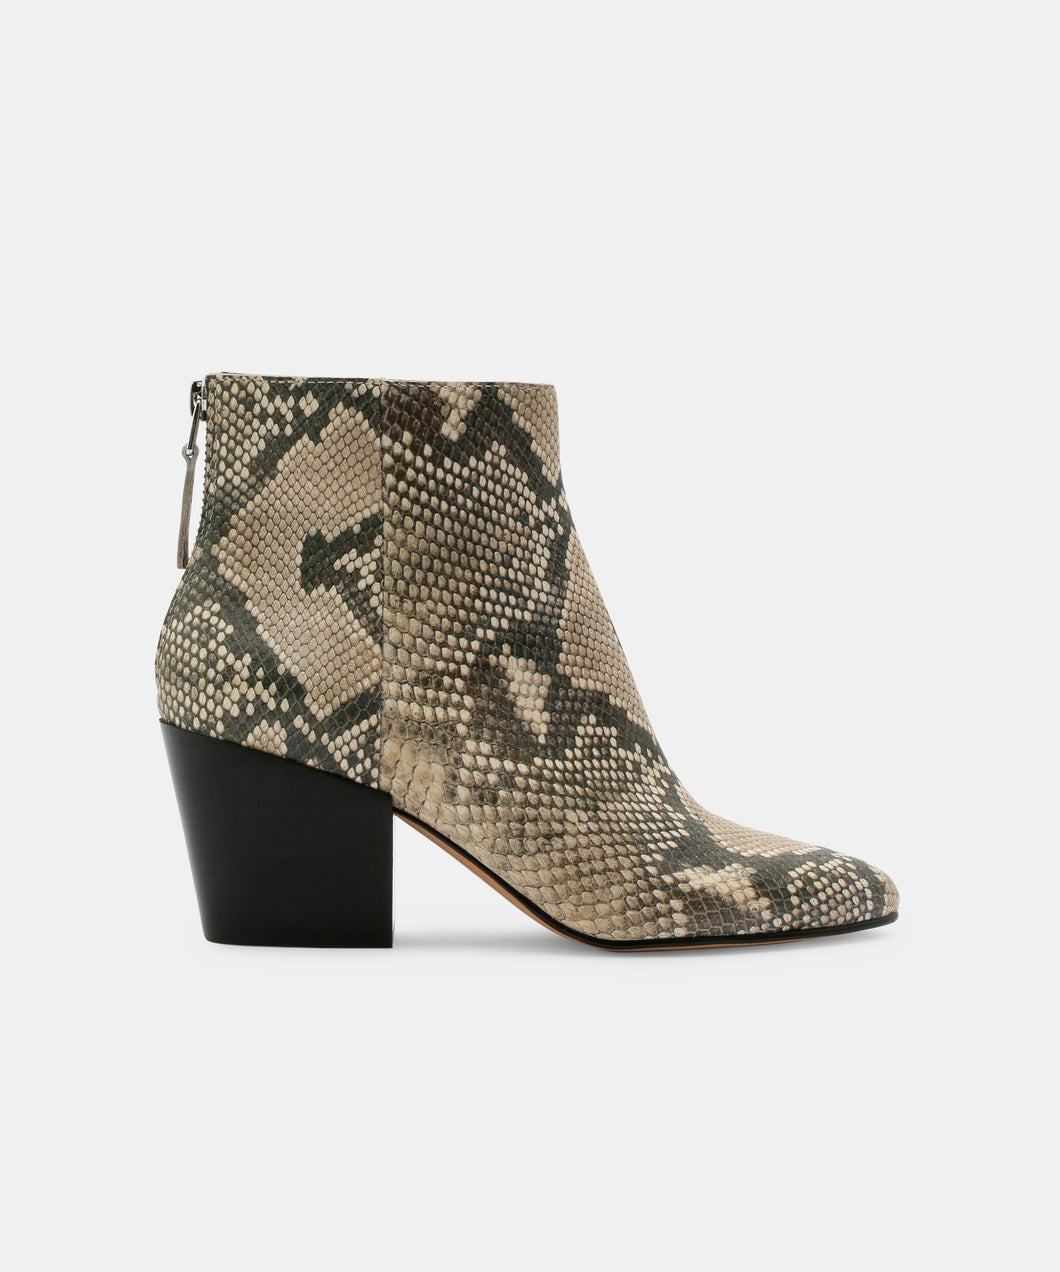 COLTYN BOOTIES IN SNAKE -   Dolce Vita